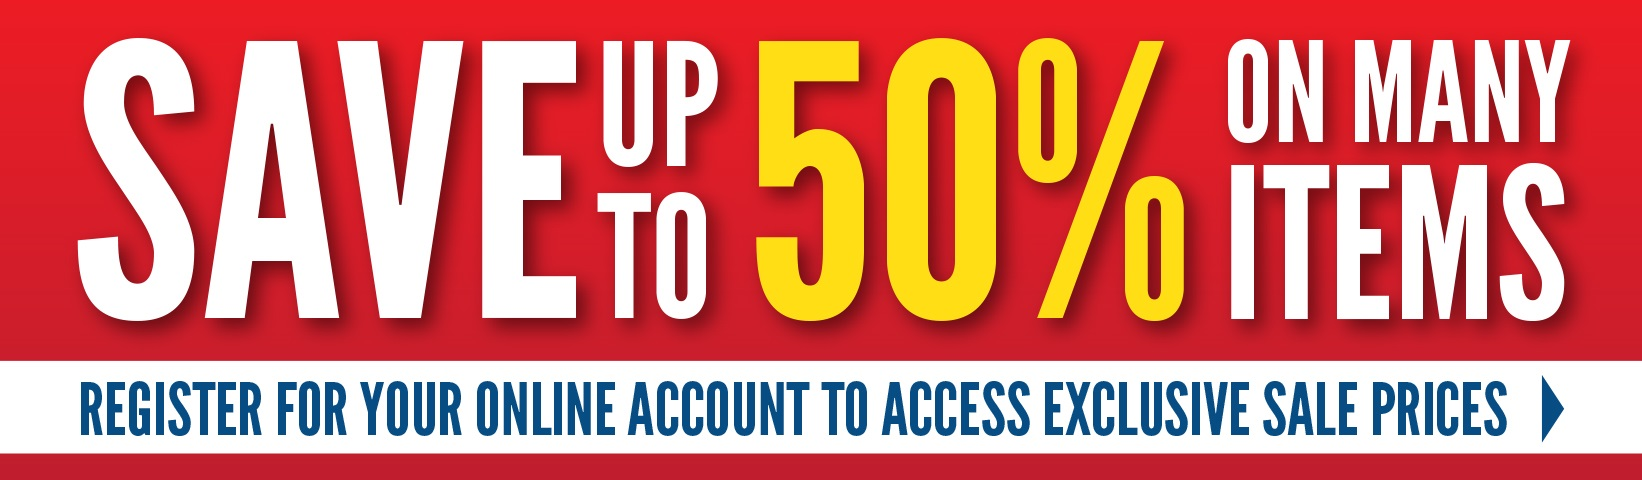 Save up to 50% on many items